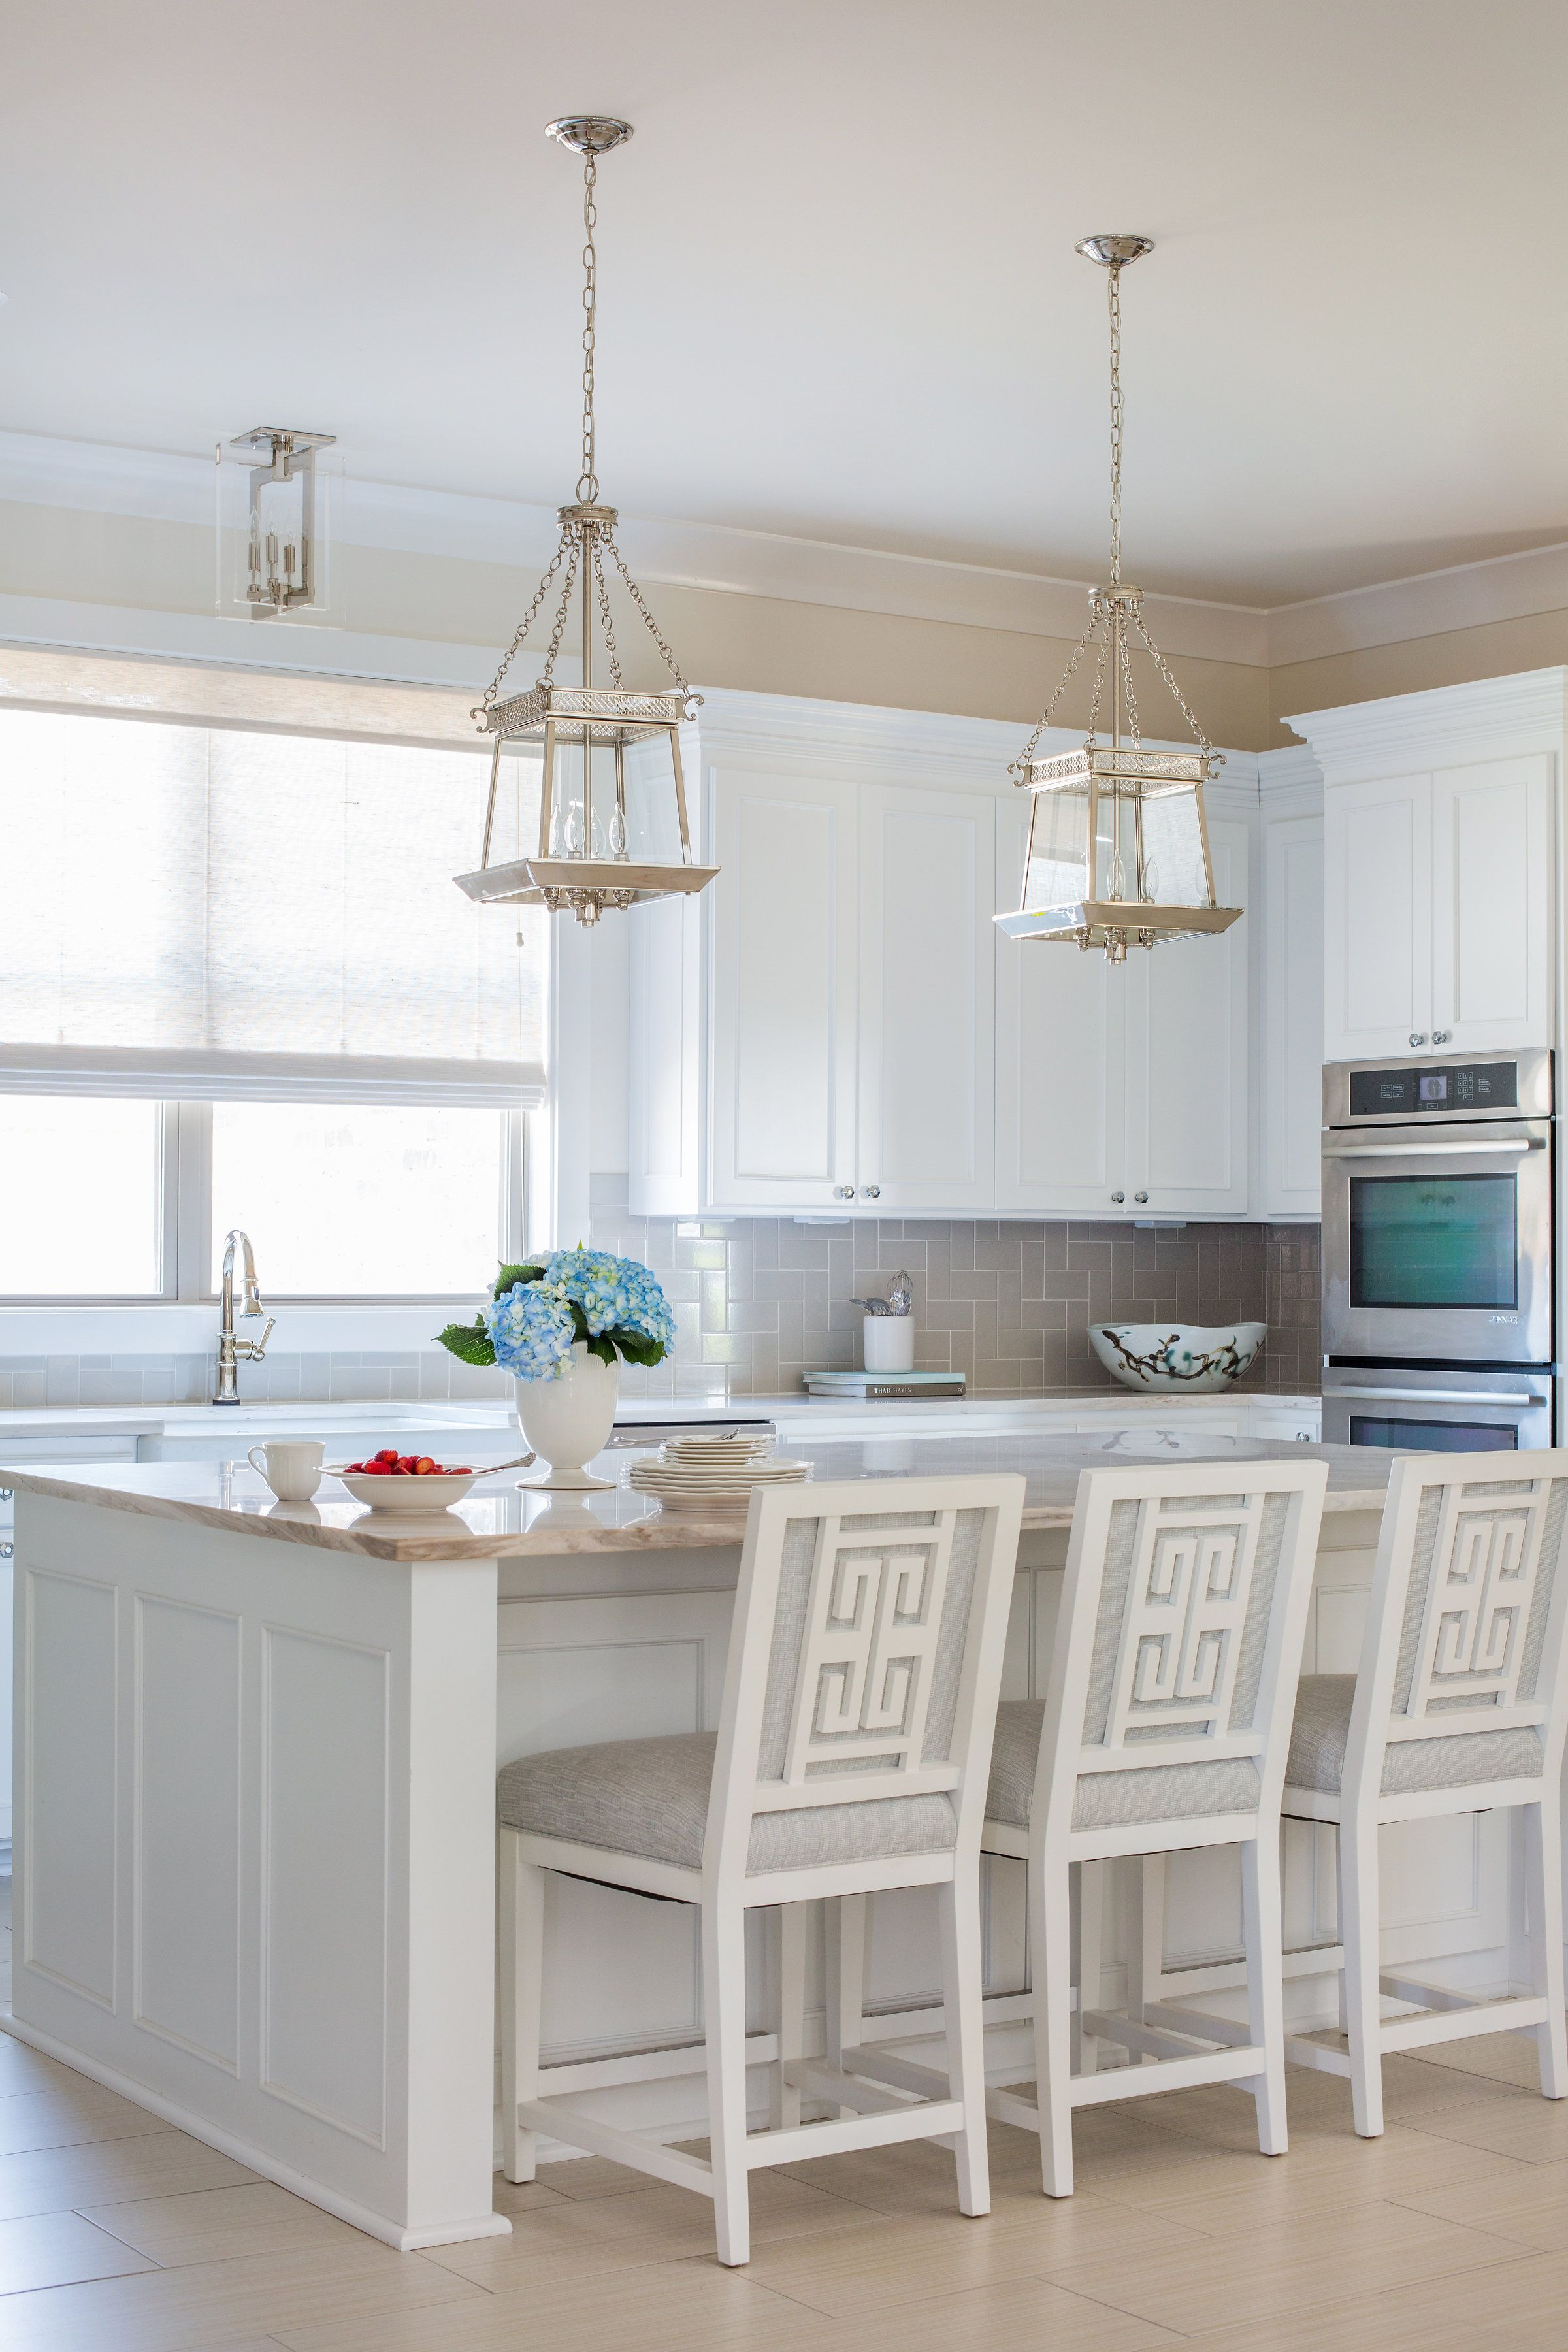 Rachel Cannon Limited Interiors | Fresh kitchen featuring marble ...